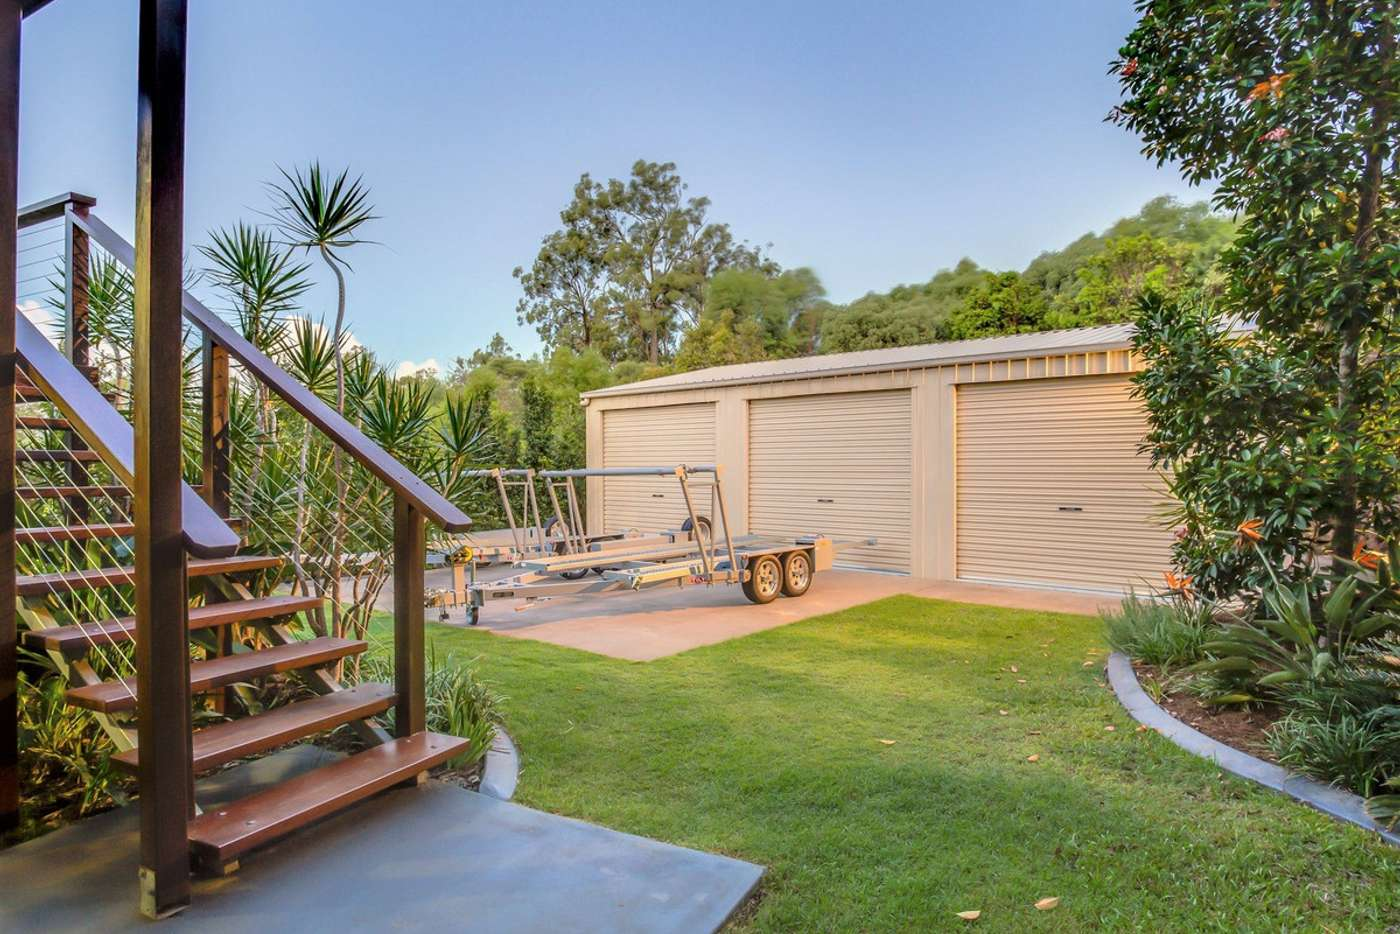 Fifth view of Homely house listing, 1/10 Laceflower Court, Reedy Creek QLD 4227